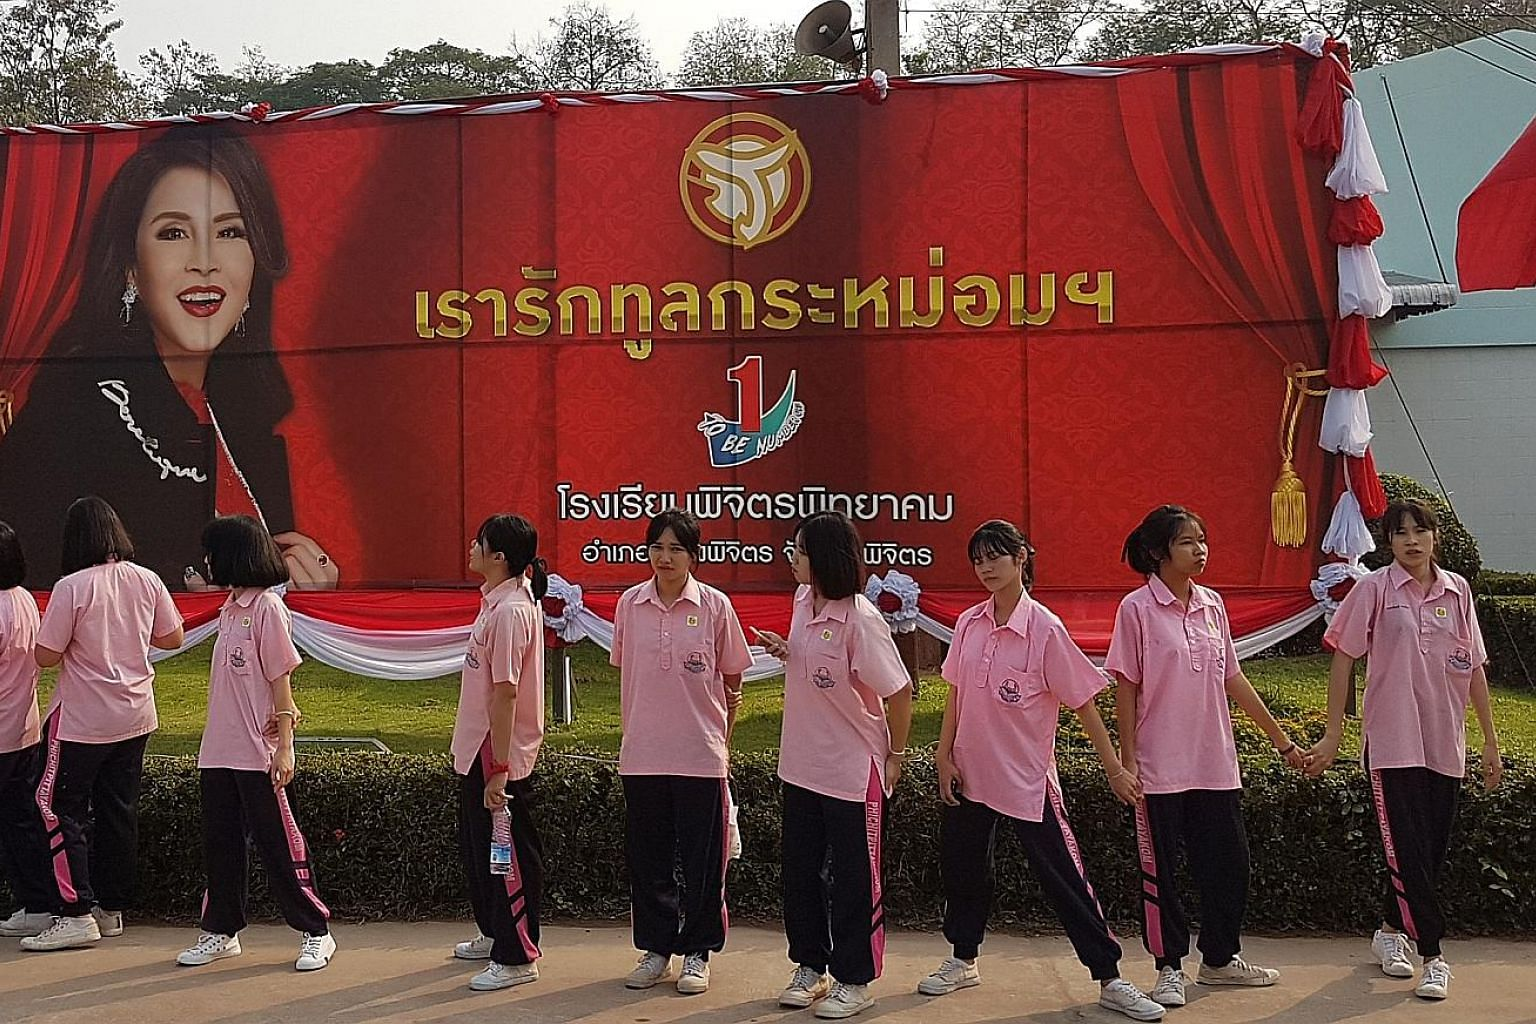 Students preparing for the arrival of Thai Princess Ubolratana Rajakanya on Thursday in Phichit Pittayakom school in Phichit Province. Thailand's Election Commission has dropped Princess Ubolratana from a list of nominees for prime minister for next